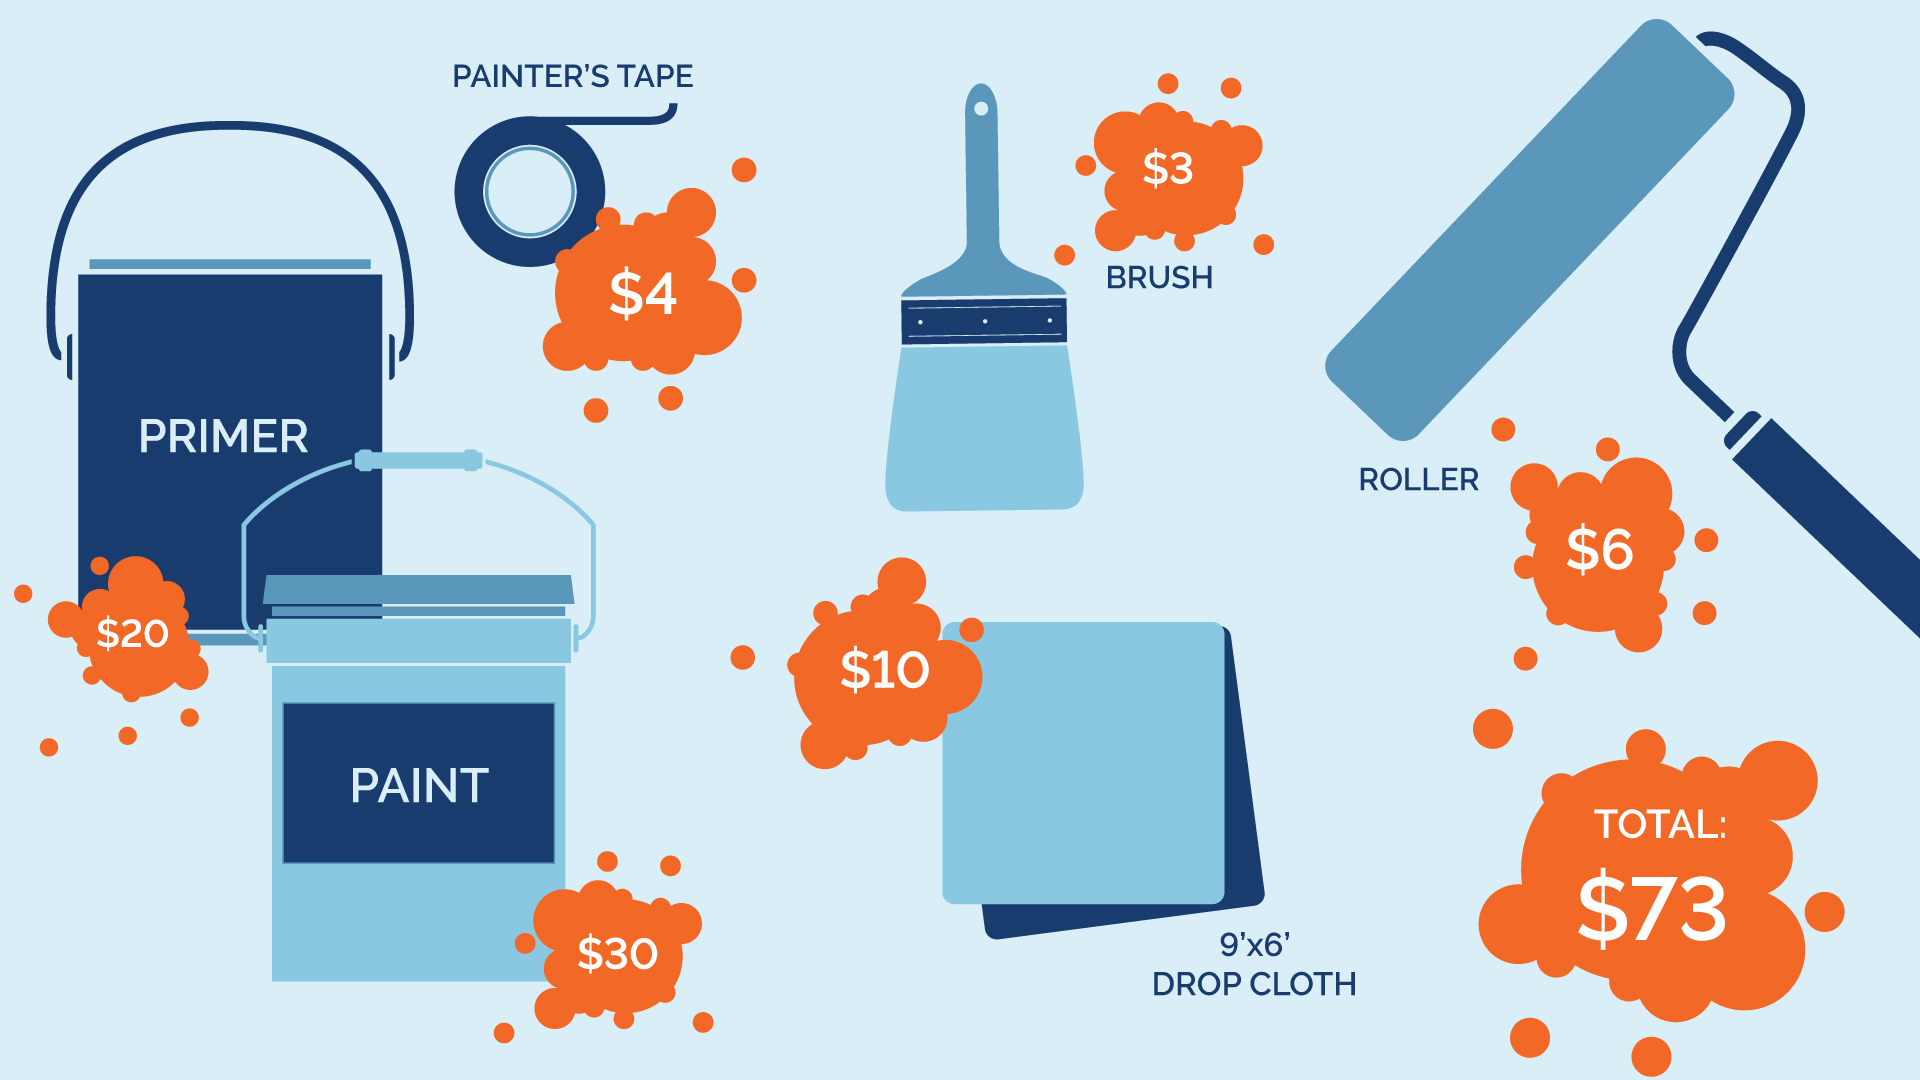 example pricing for some paint items